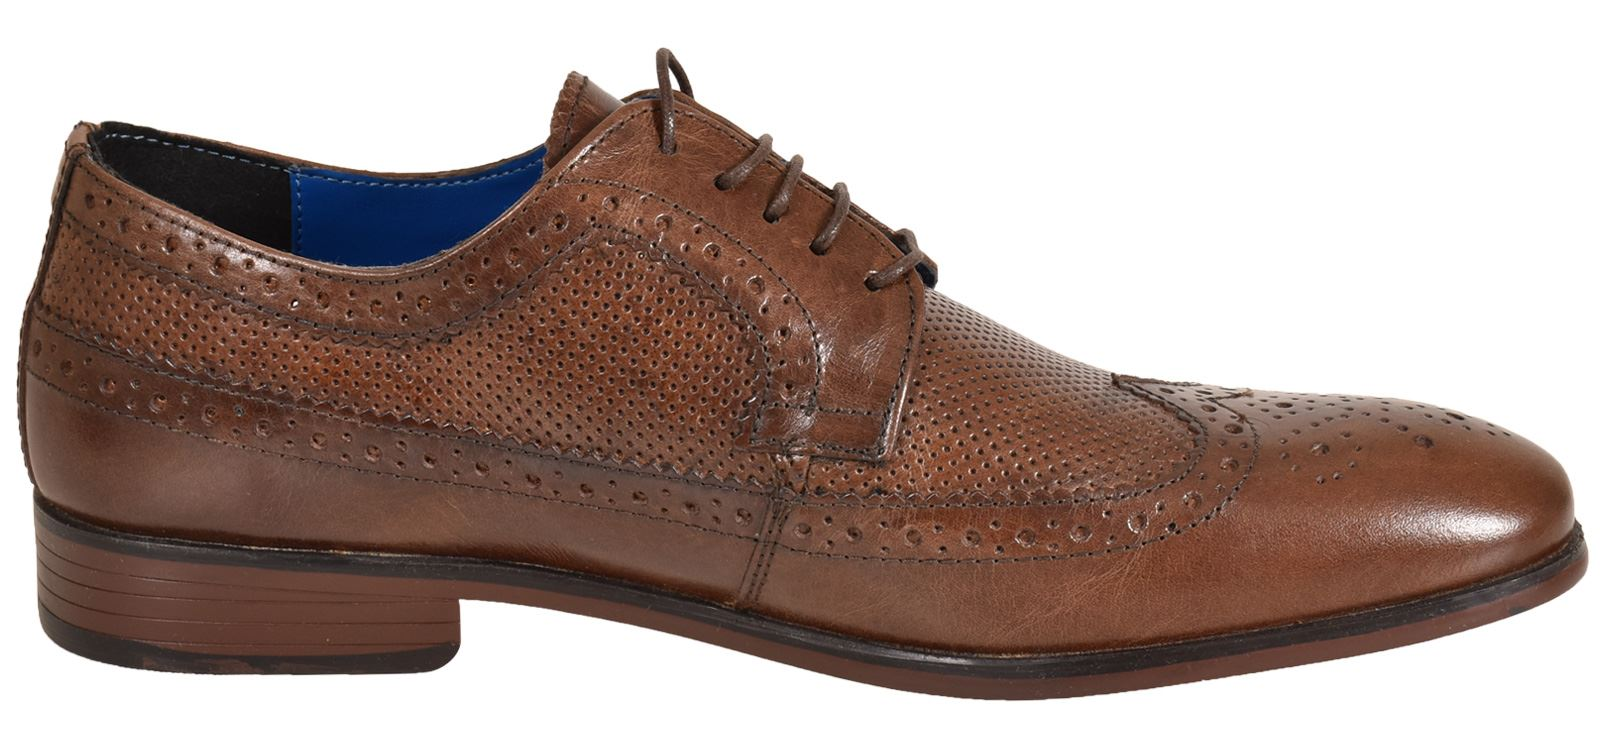 Mens-UK-Style-Leather-Lining-Formal-Office-Wedding-Smart-Work-Brogue-Shoes thumbnail 105